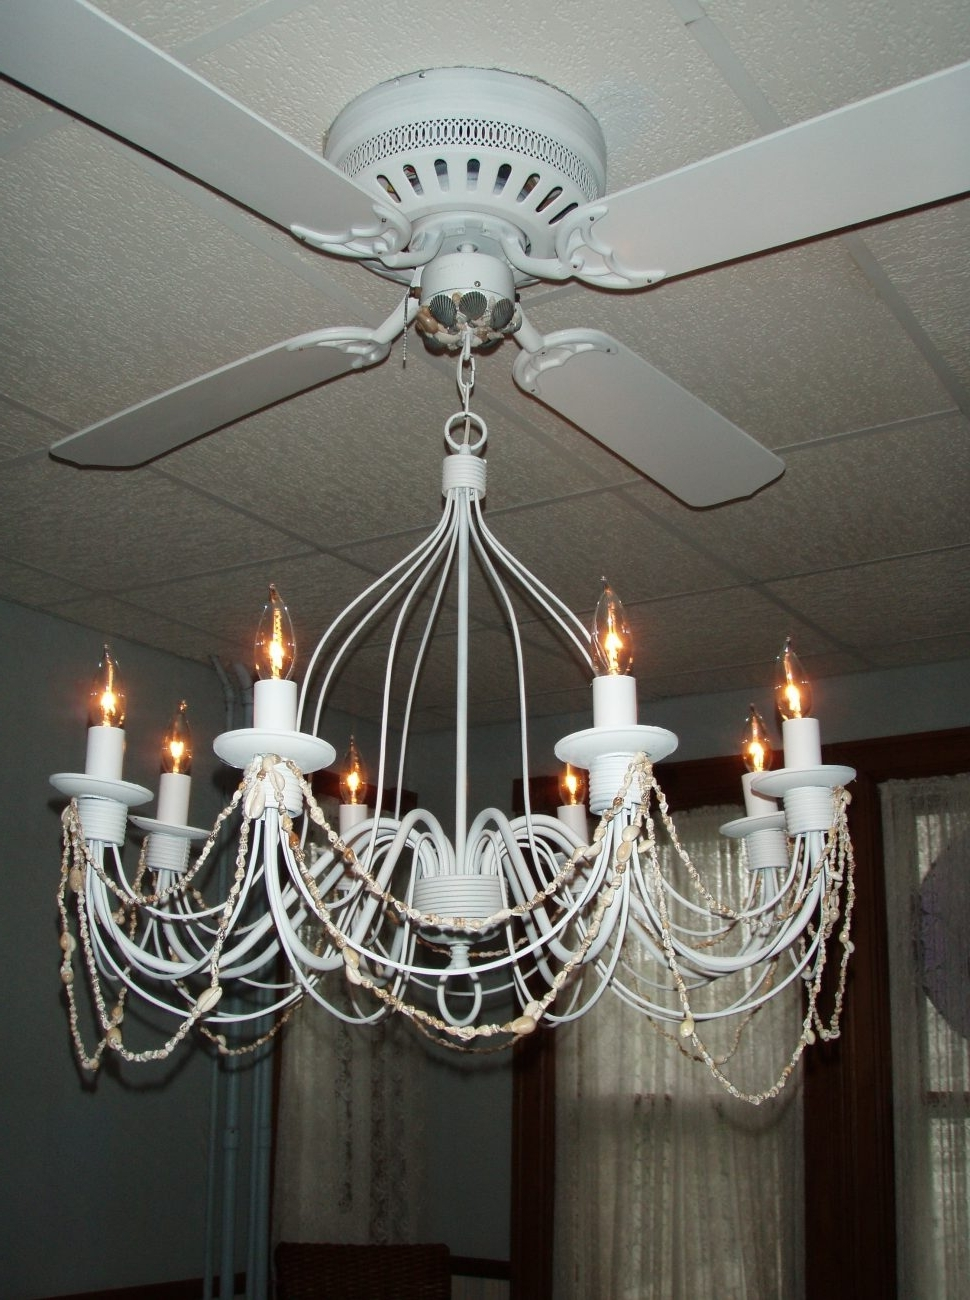 Ceiling Fans : Excellent Ceiling Fan Chandelier Elegant Fans With Regarding Fashionable Chandelier Light Fixture For Ceiling Fan (View 7 of 15)